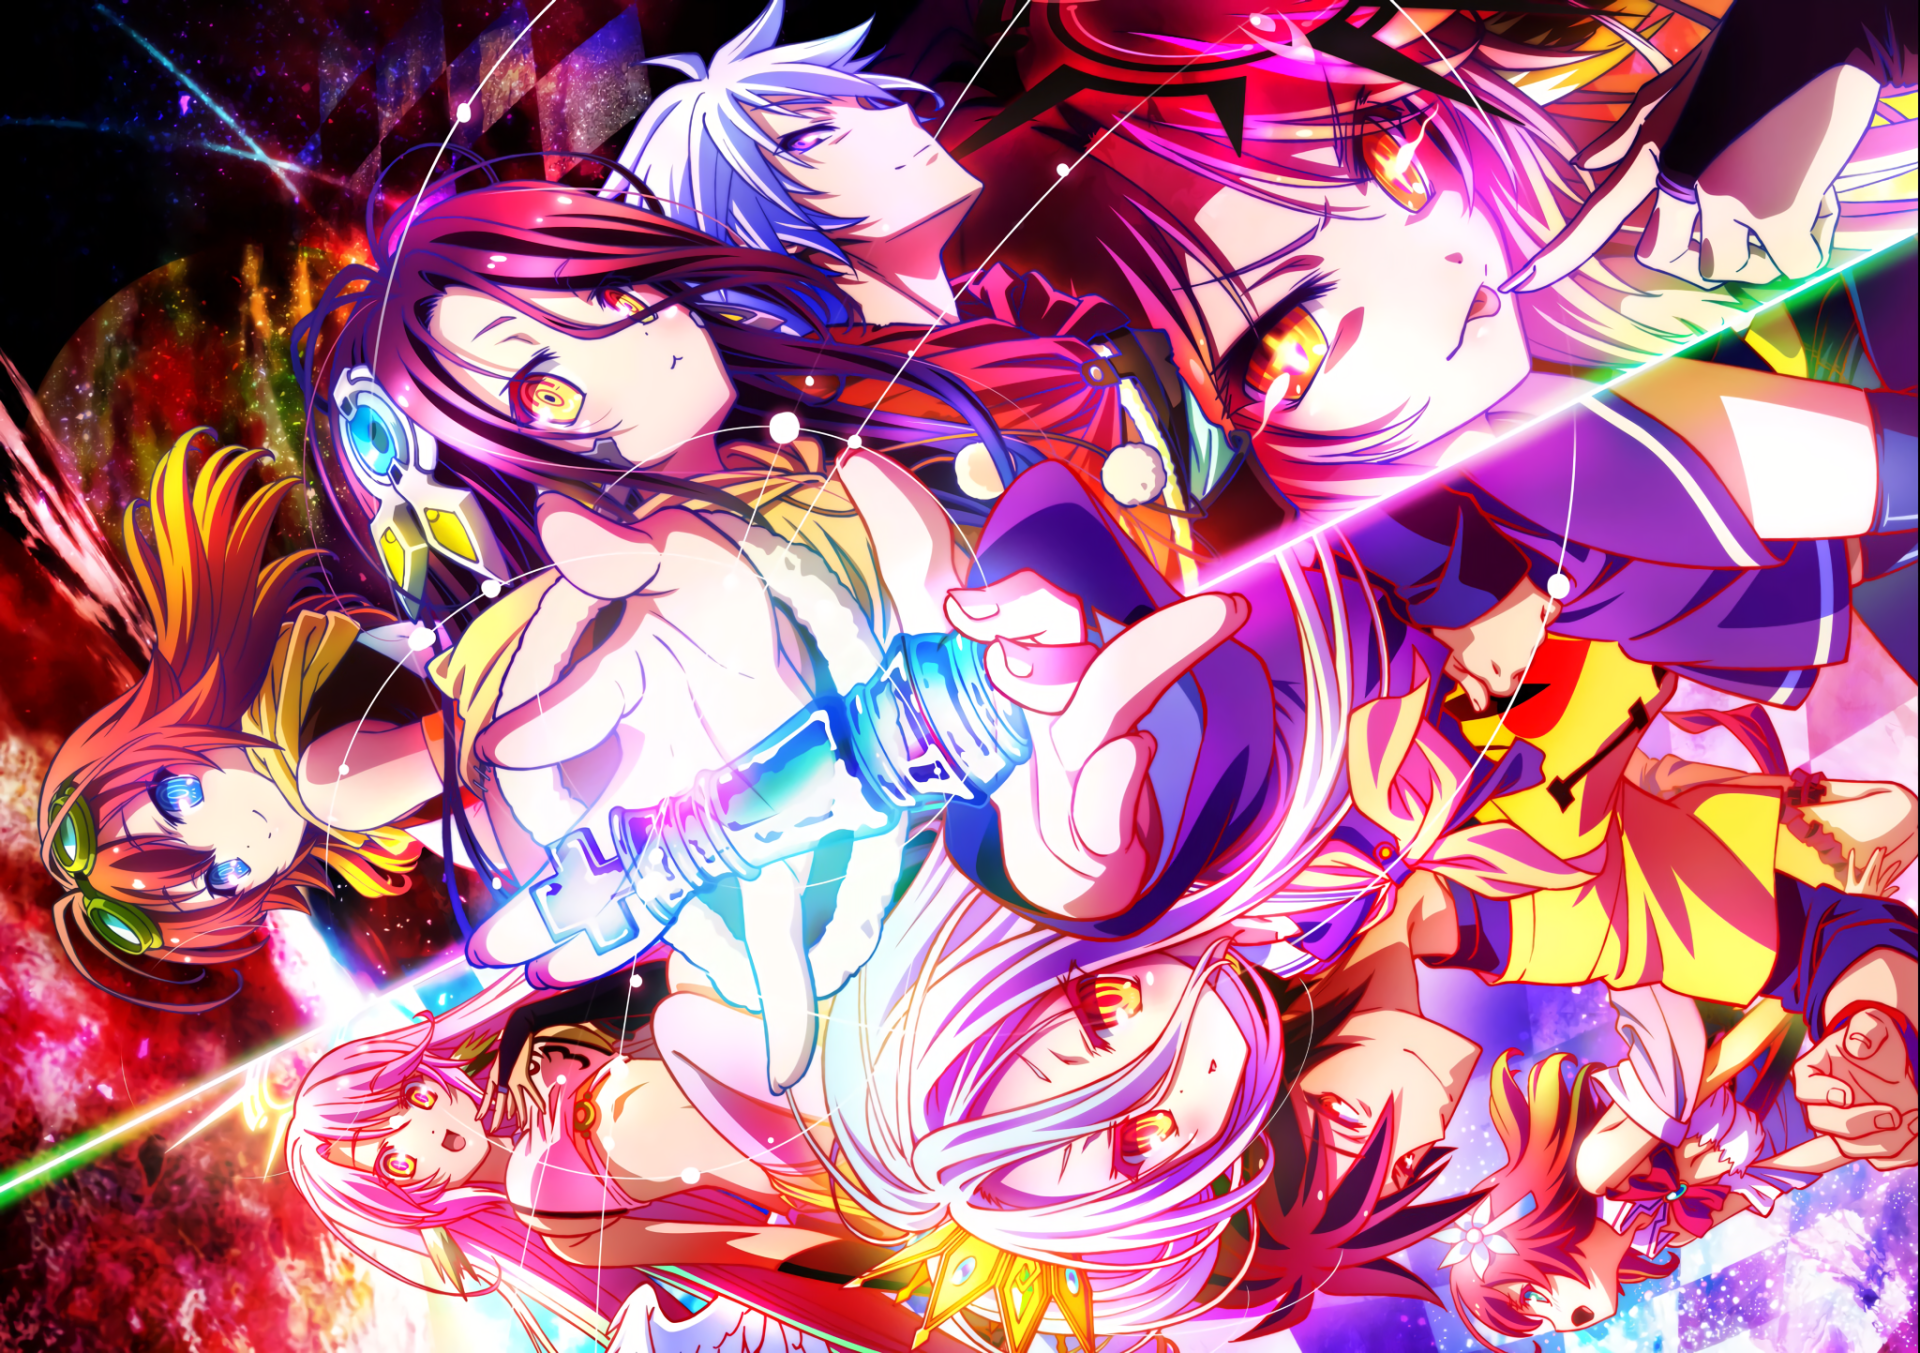 Anime No Game No Life Stephanie Dola Riku Dola Shuvi Dola Jibril No